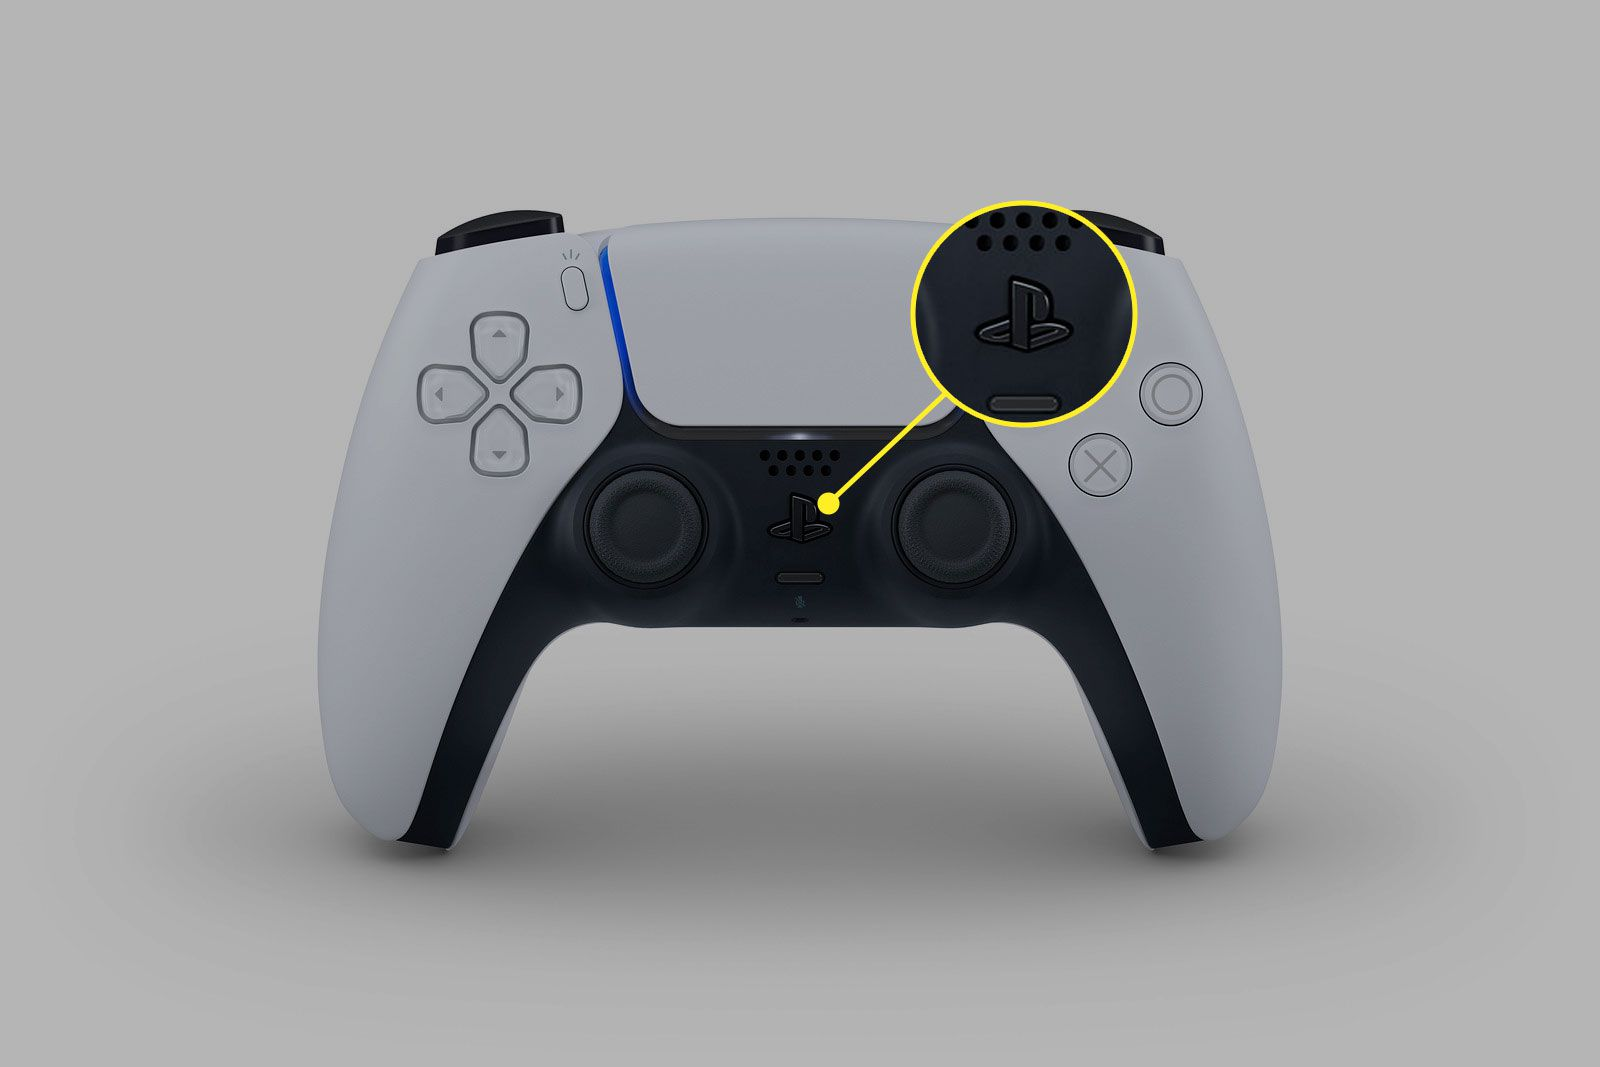 The PS button on the PlayStation 5 controller